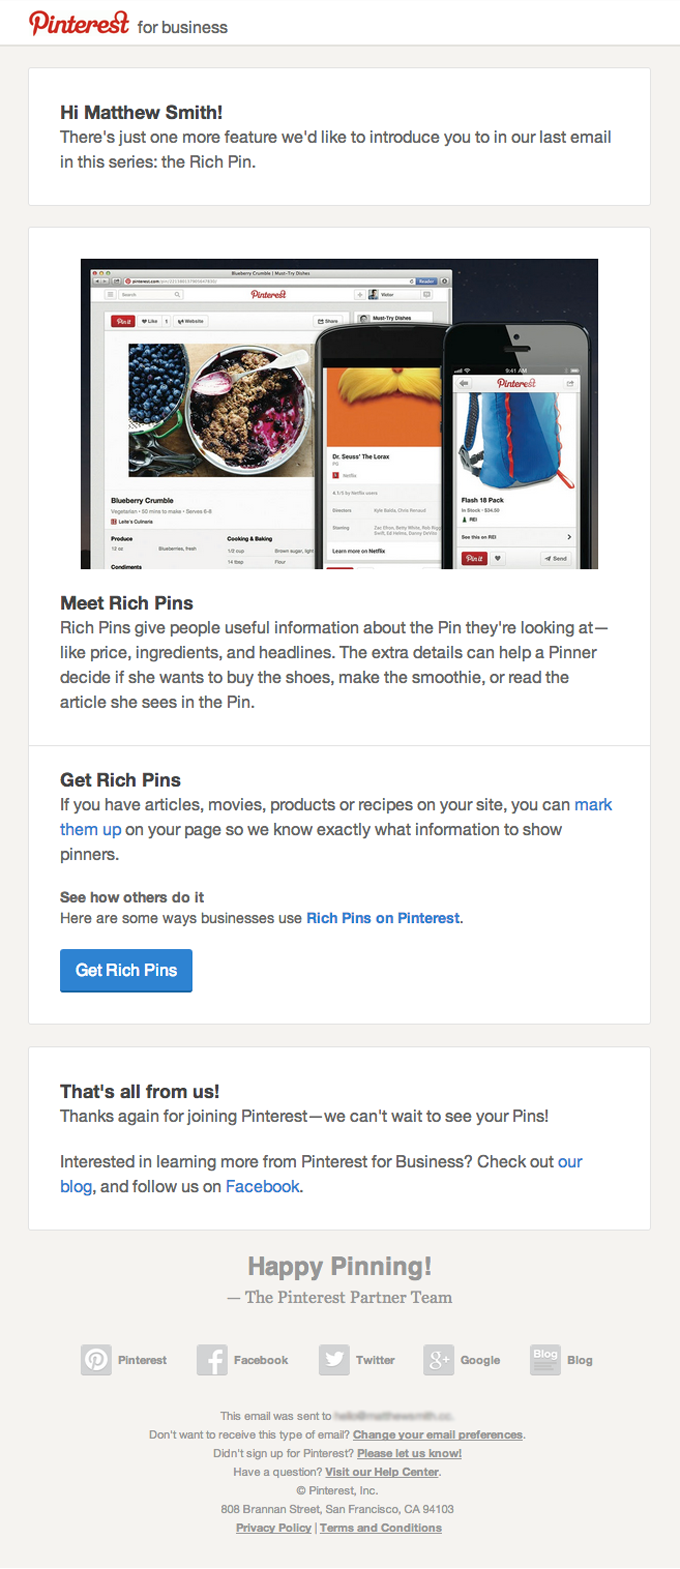 getting-started-onboarding-email-series-from-pinterest